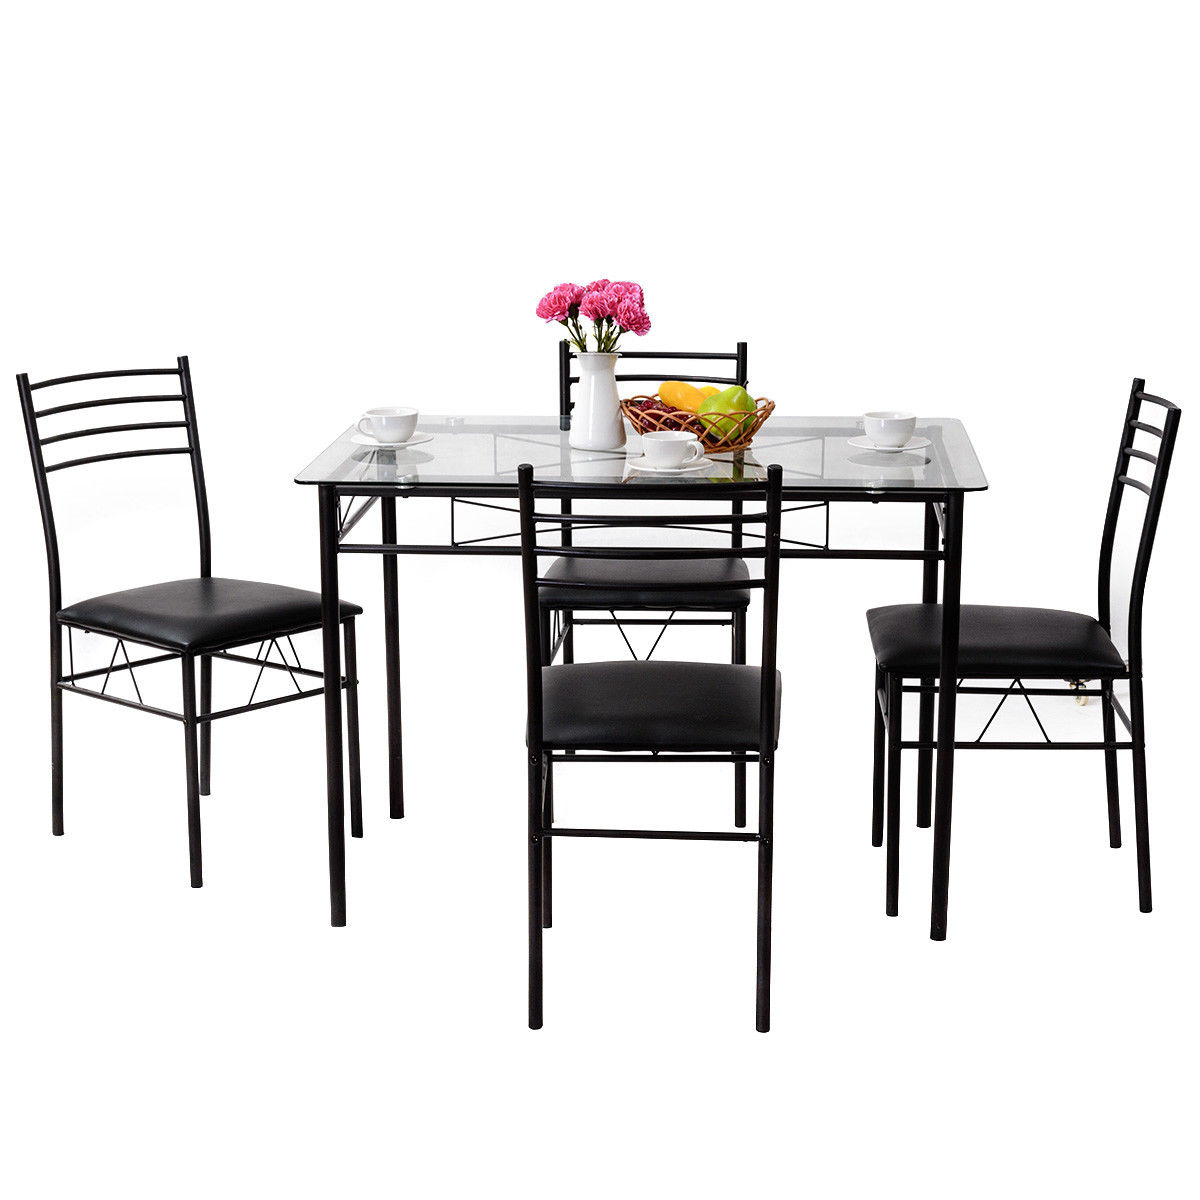 Gymax 5 PC Dining Set Glass Top Table And 4 Chairs Kitchen Room Furniture